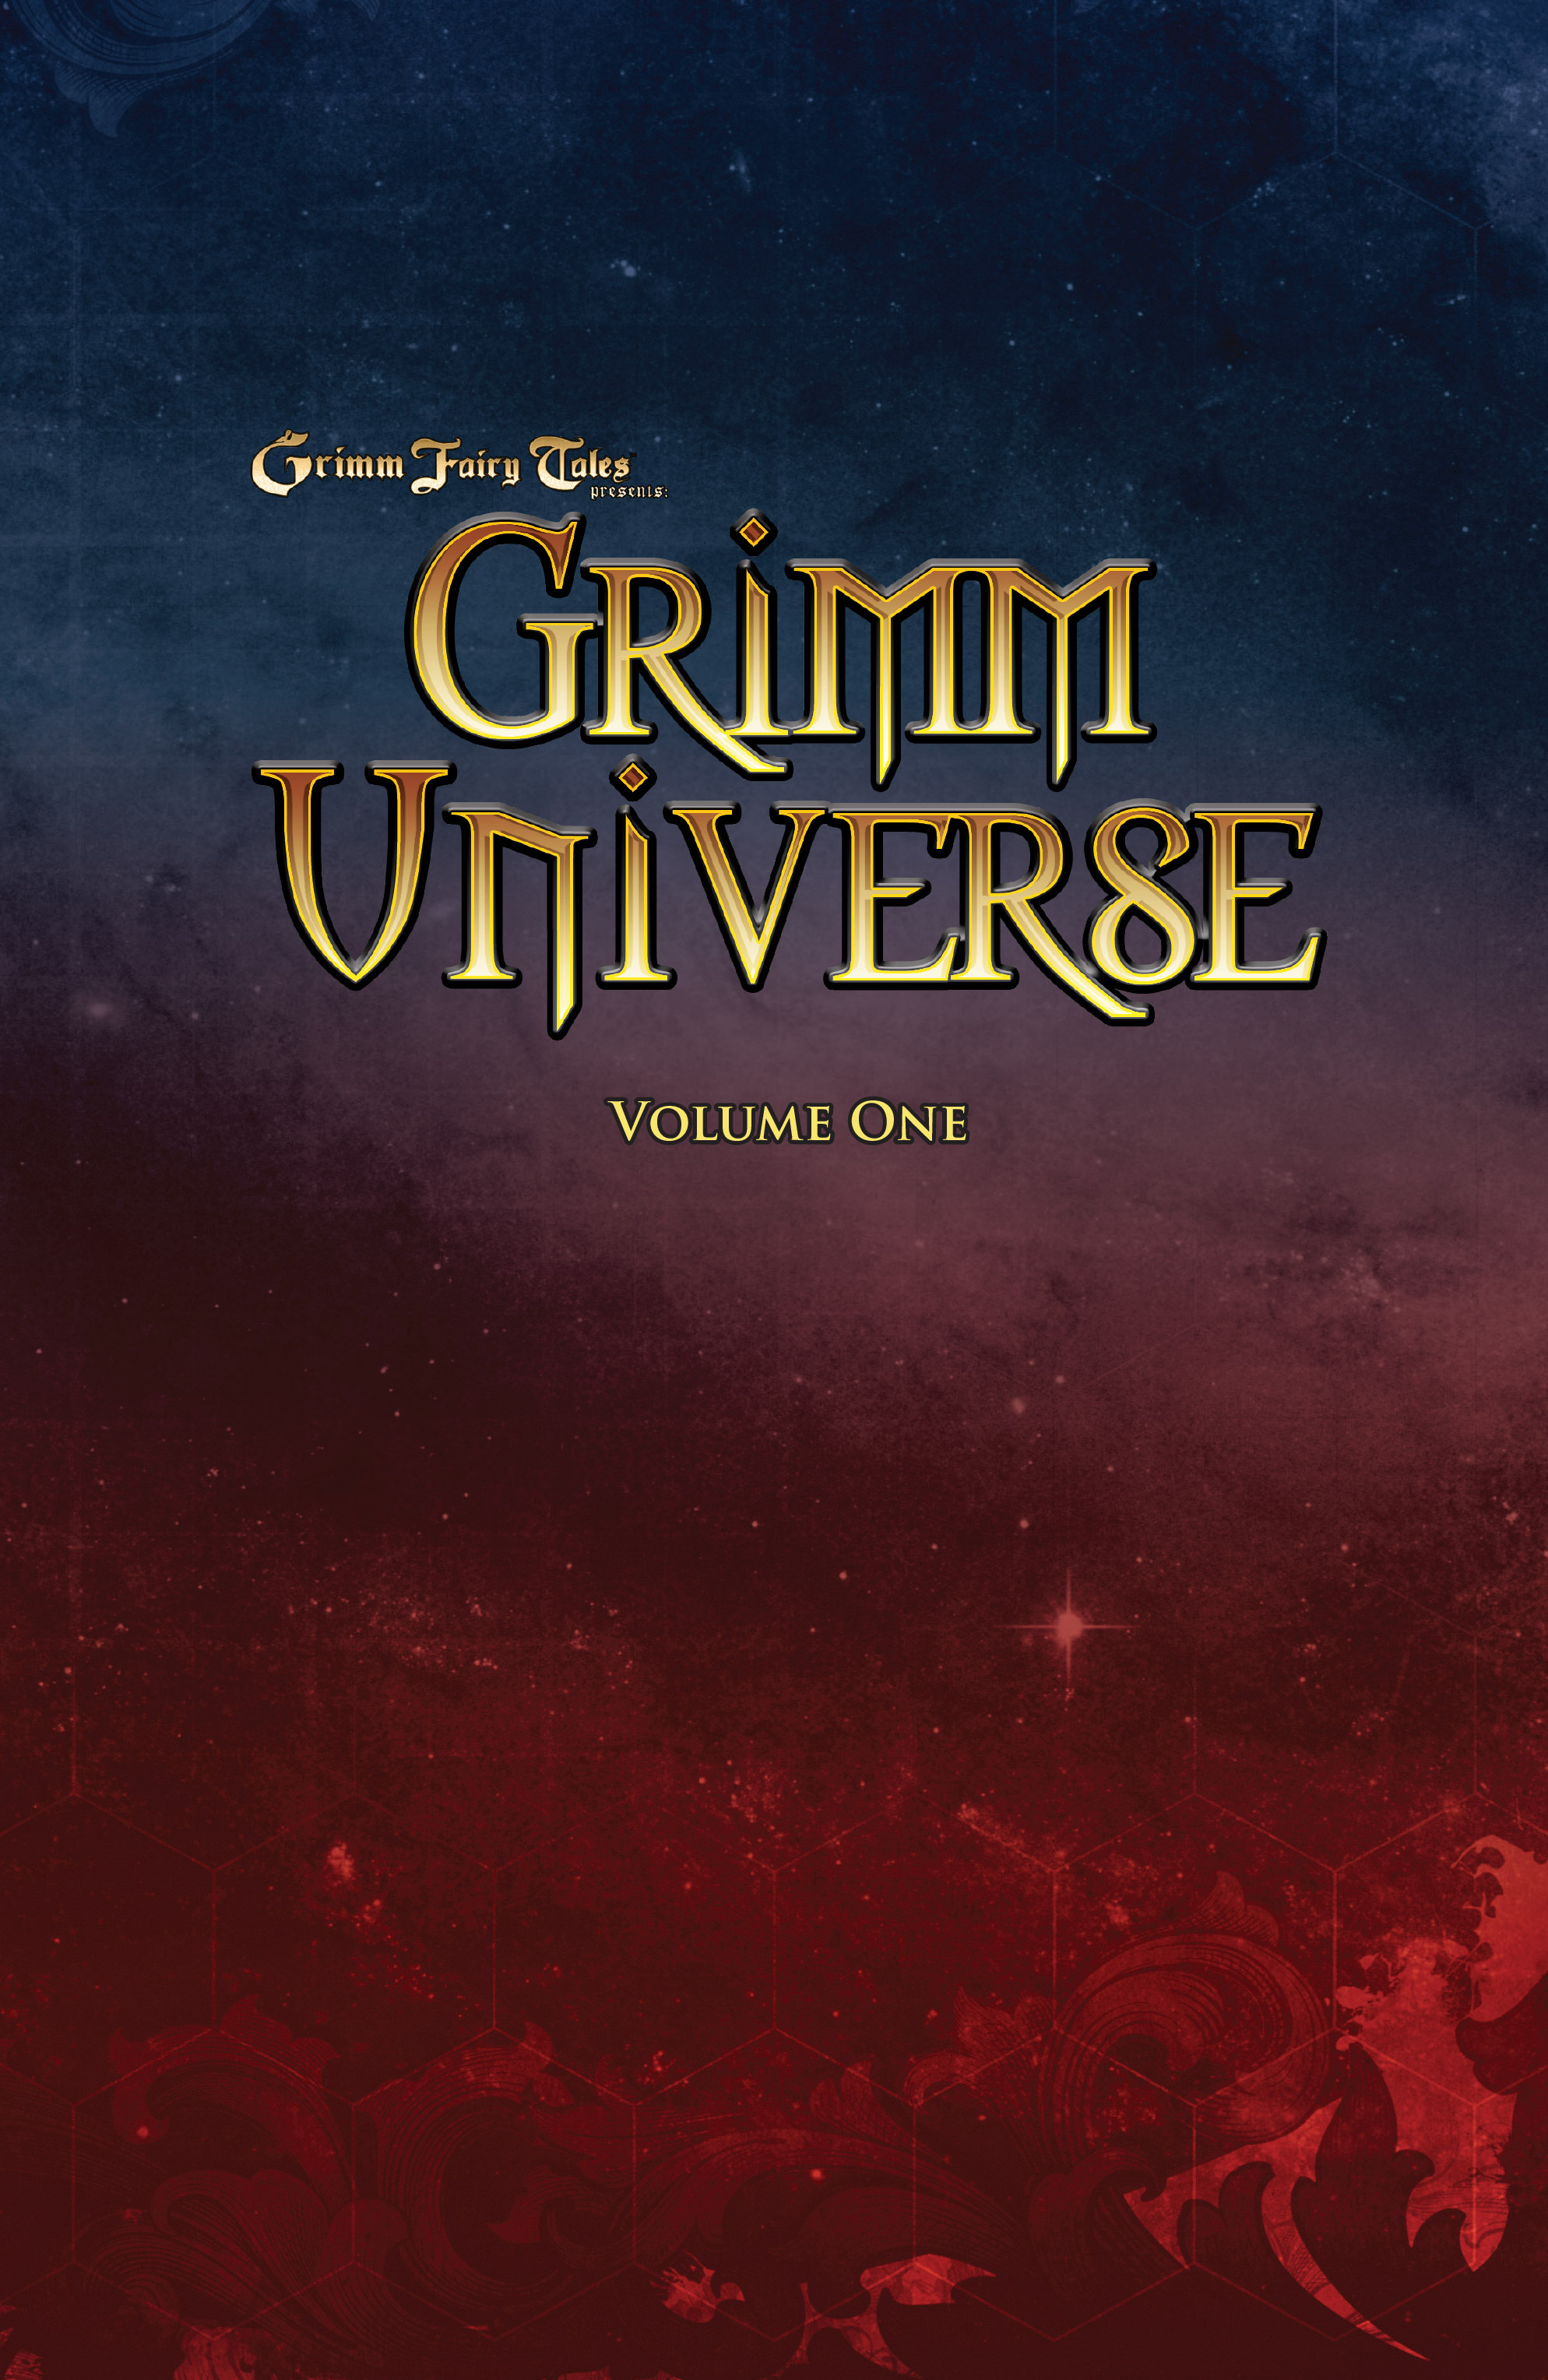 Read online Grimm Fairy Tales presents Grimm Universe comic -  Issue # TPB - 4